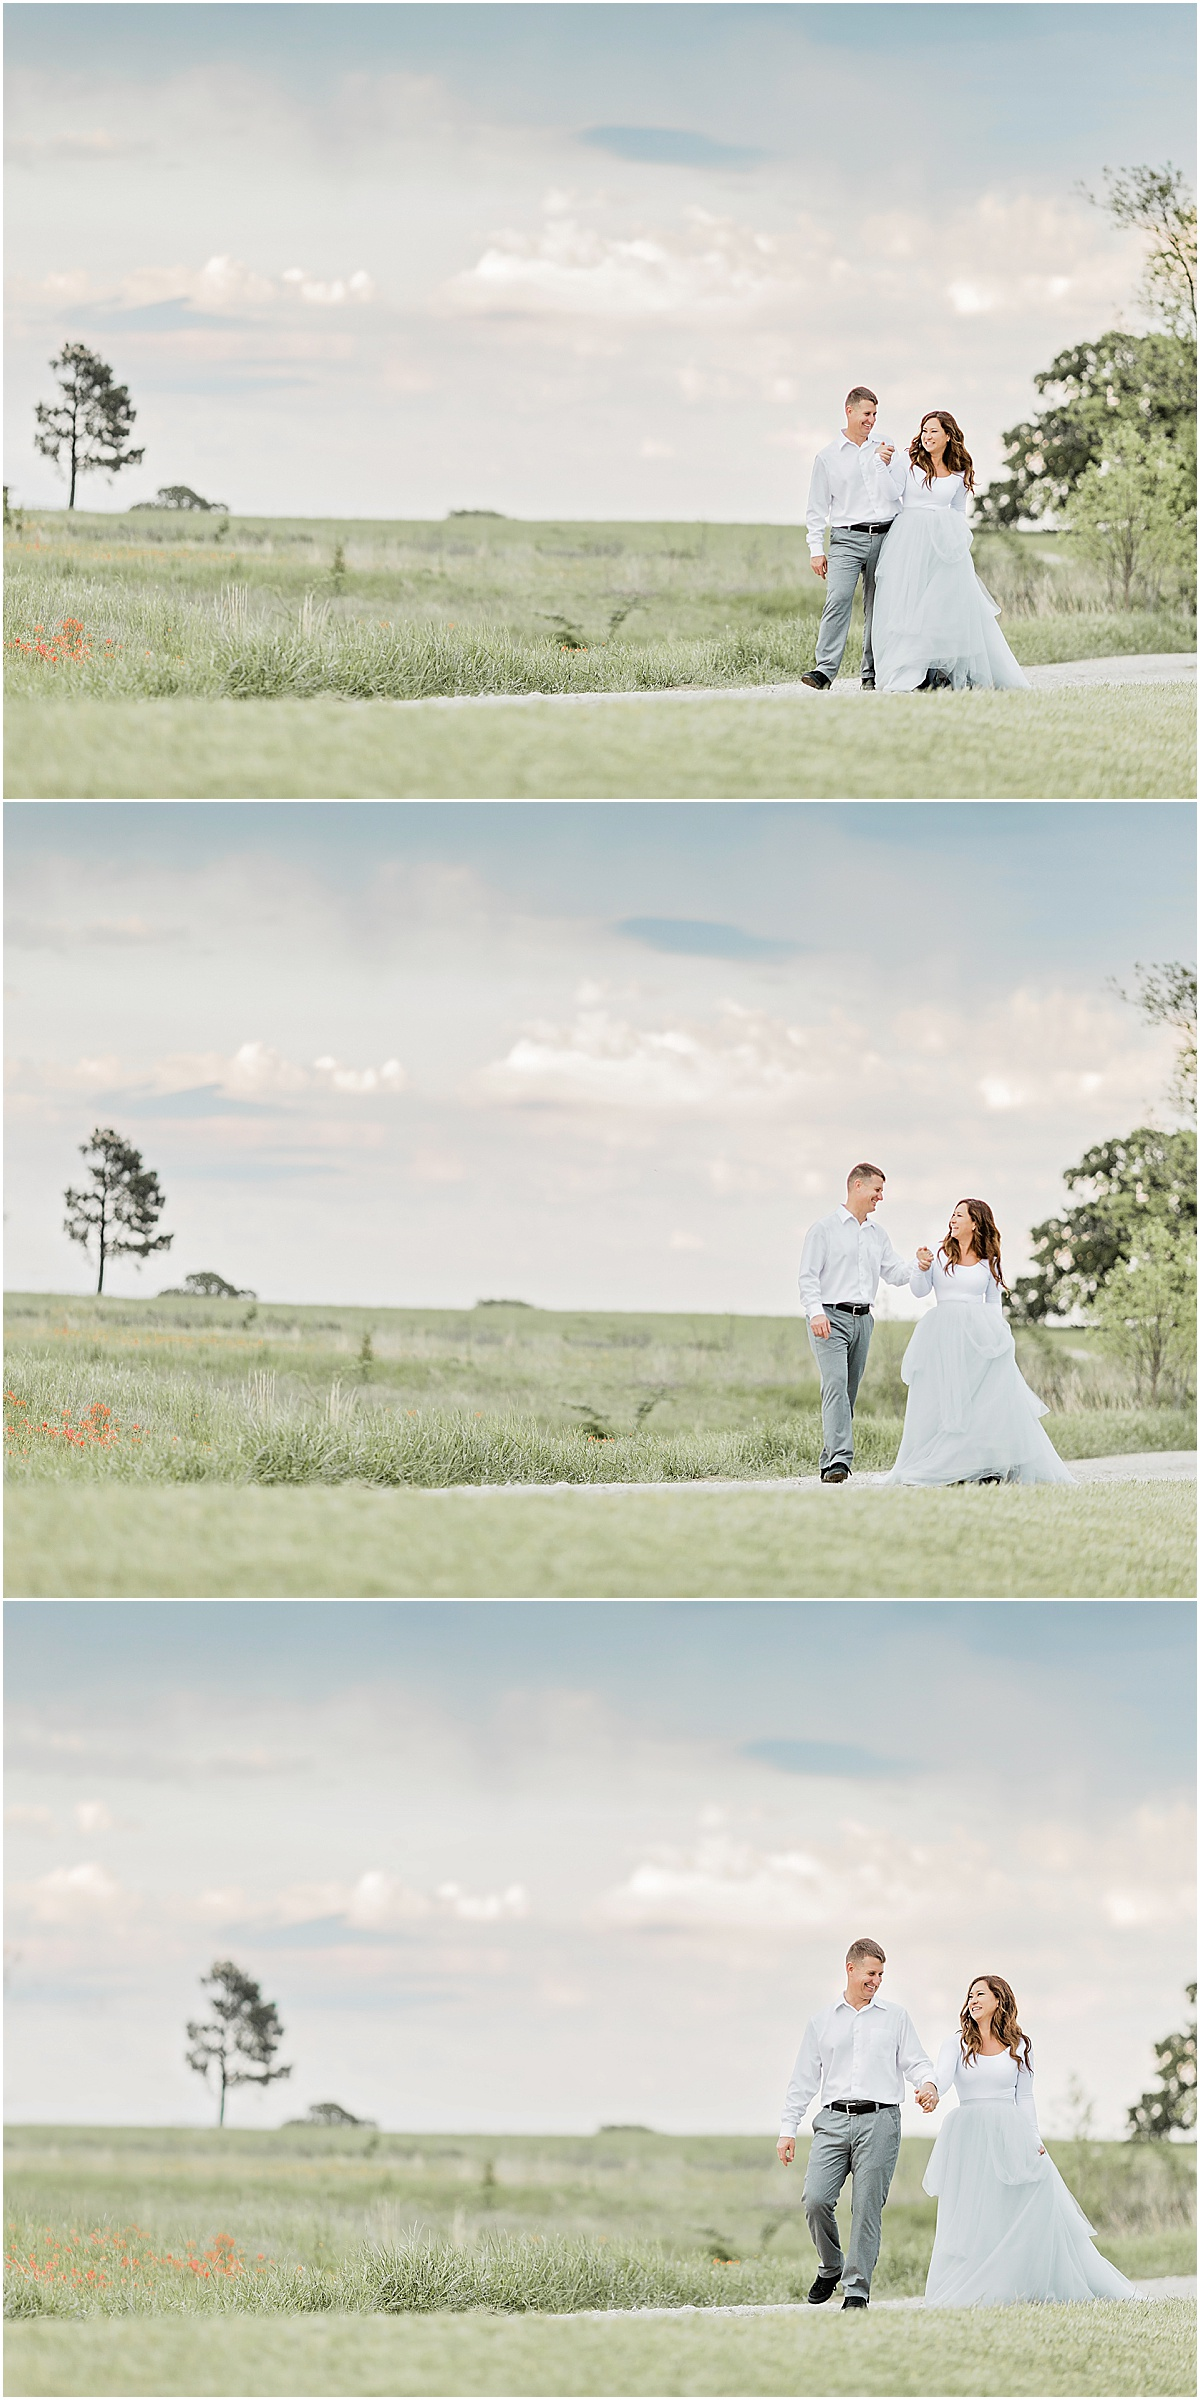 Dallas Wedding Photographer Flower Mound Anniversary Photographer Kim Brett Kate Marie Portraiture 5.jpg